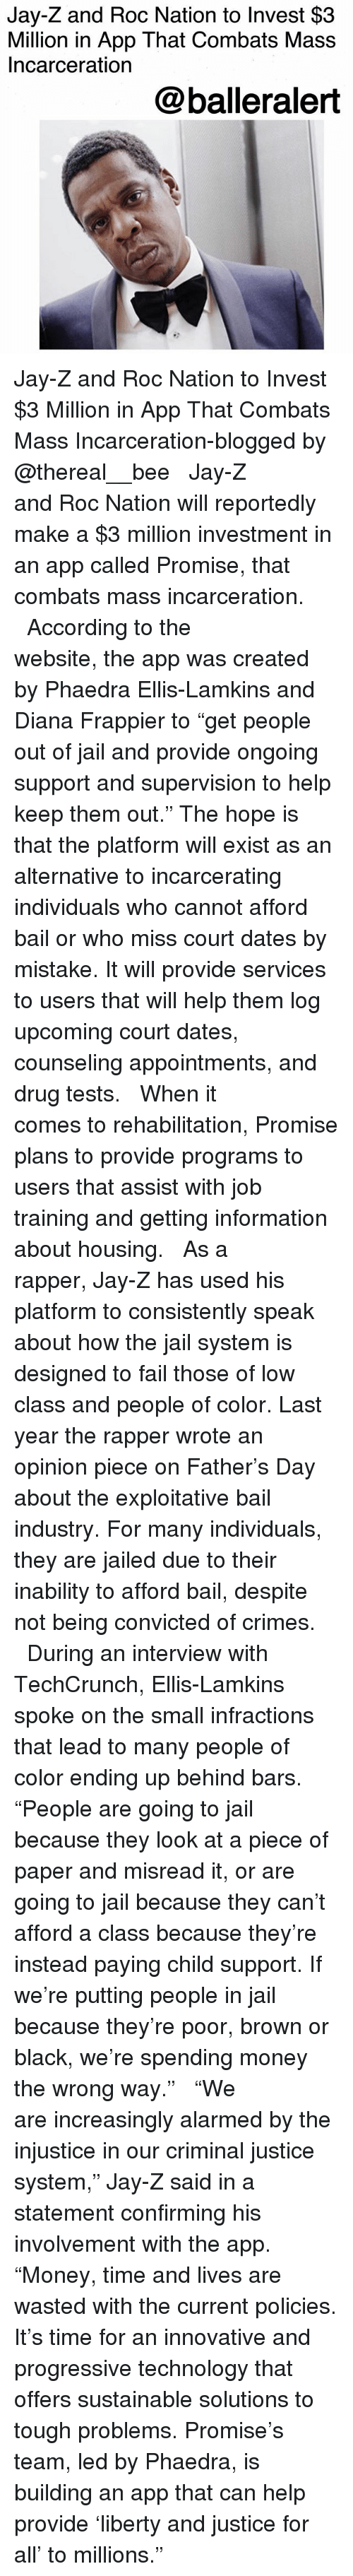 "Thereal: Jay-Z and Roc Nation to Invest $3  Million in App That Combats Mass  Incarceration  @balleralert Jay-Z and Roc Nation to Invest $3 Million in App That Combats Mass Incarceration-blogged by @thereal__bee ⠀⠀⠀⠀⠀⠀⠀⠀⠀ ⠀⠀ Jay-Z and Roc Nation will reportedly make a $3 million investment in an app called Promise, that combats mass incarceration. ⠀⠀⠀⠀⠀⠀⠀⠀⠀ ⠀⠀ According to the website, the app was created by Phaedra Ellis-Lamkins and Diana Frappier to ""get people out of jail and provide ongoing support and supervision to help keep them out."" The hope is that the platform will exist as an alternative to incarcerating individuals who cannot afford bail or who miss court dates by mistake. It will provide services to users that will help them log upcoming court dates, counseling appointments, and drug tests. ⠀⠀⠀⠀⠀⠀⠀⠀⠀ ⠀⠀ When it comes to rehabilitation, Promise plans to provide programs to users that assist with job training and getting information about housing. ⠀⠀⠀⠀⠀⠀⠀⠀⠀ ⠀⠀ As a rapper, Jay-Z has used his platform to consistently speak about how the jail system is designed to fail those of low class and people of color. Last year the rapper wrote an opinion piece on Father's Day about the exploitative bail industry. For many individuals, they are jailed due to their inability to afford bail, despite not being convicted of crimes. ⠀⠀⠀⠀⠀⠀⠀⠀⠀ ⠀⠀ During an interview with TechCrunch, Ellis-Lamkins spoke on the small infractions that lead to many people of color ending up behind bars. ""People are going to jail because they look at a piece of paper and misread it, or are going to jail because they can't afford a class because they're instead paying child support. If we're putting people in jail because they're poor, brown or black, we're spending money the wrong way."" ⠀⠀⠀⠀⠀⠀⠀⠀⠀ ⠀⠀ ""We are increasingly alarmed by the injustice in our criminal justice system,"" Jay-Z said in a statement confirming his involvement with the app. ""Money, time and lives are wasted with the current policies. It's time for an innovative and progressive technology that offers sustainable solutions to tough problems. Promise's team, led by Phaedra, is building an app that can help provide 'liberty and justice for all' to millions."" ⠀⠀⠀⠀⠀⠀⠀⠀⠀ ⠀⠀"